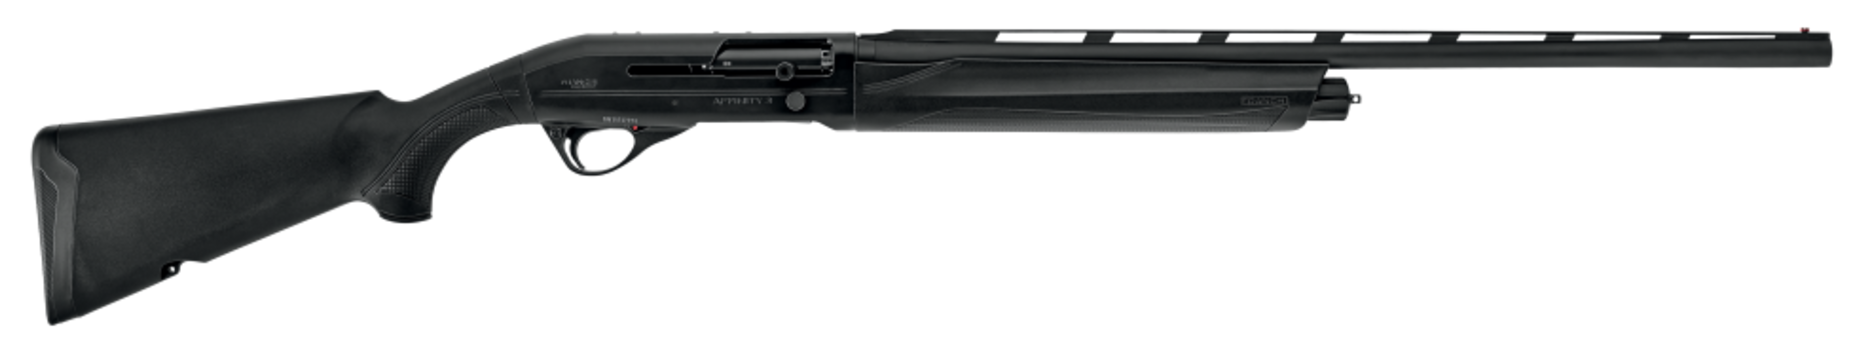 "Affinity 3 |12ga 28"" Barrel, 3"" Chamber, Black Synthetic Stock, IC, M, F Chokes and Wrench"